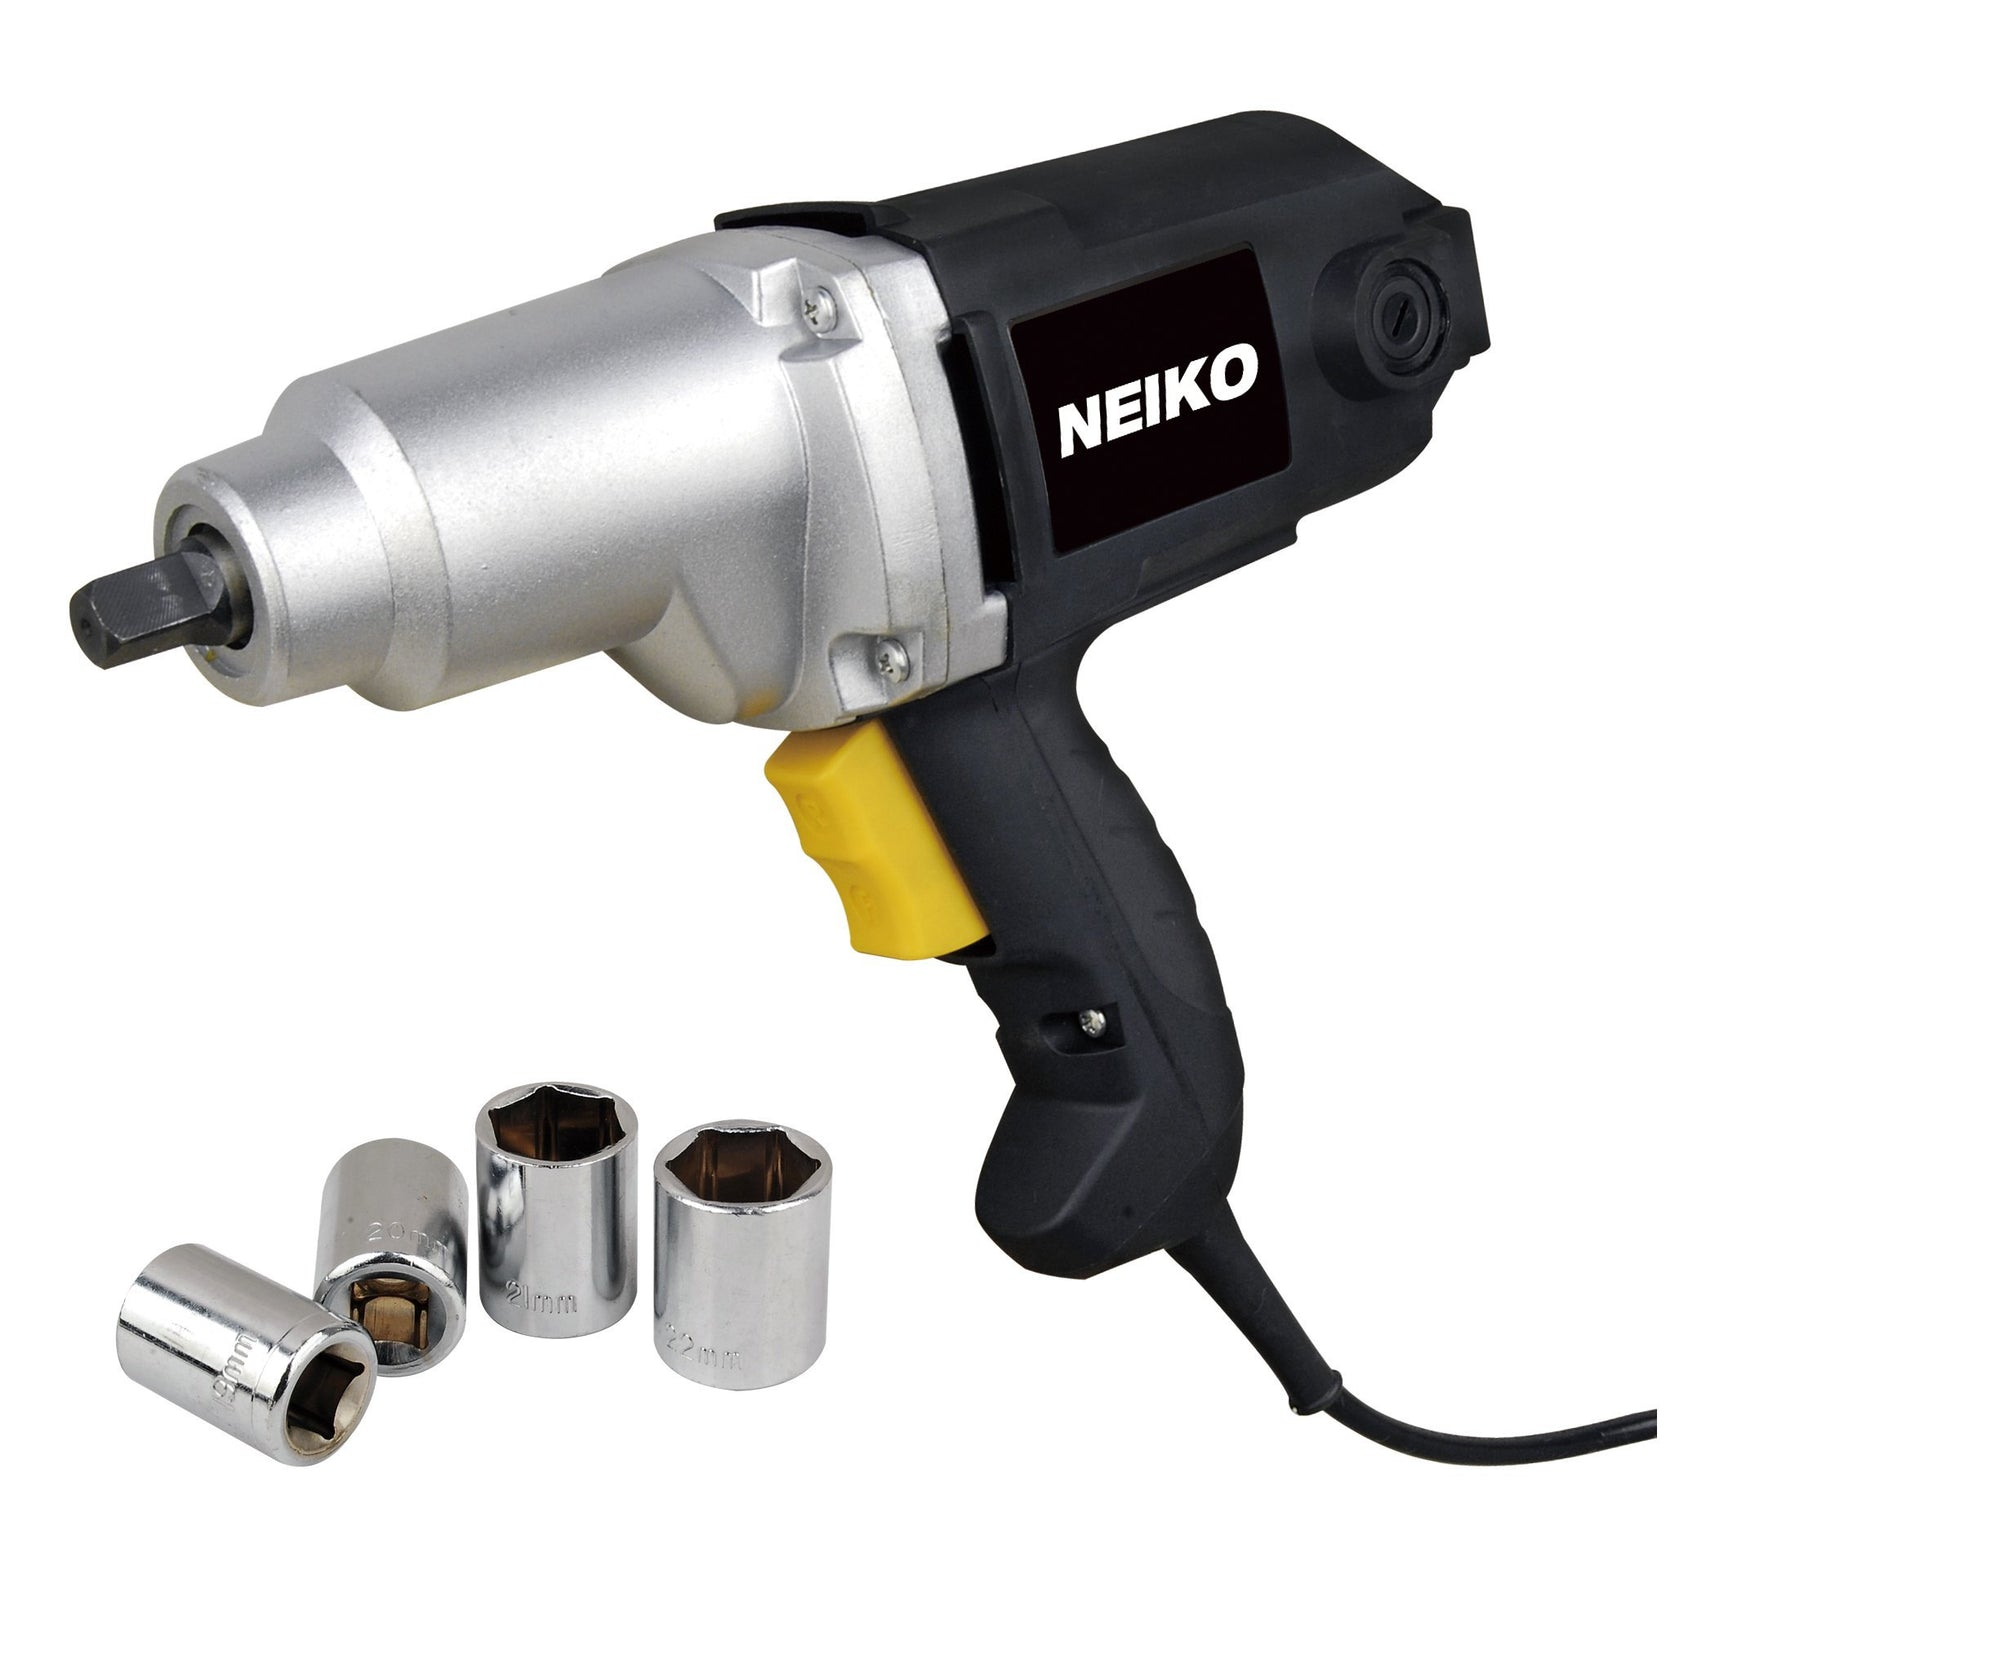 1/2-inch Electric Impact Wrench Kit with 4 Metric Sockets | 9mm-22mm